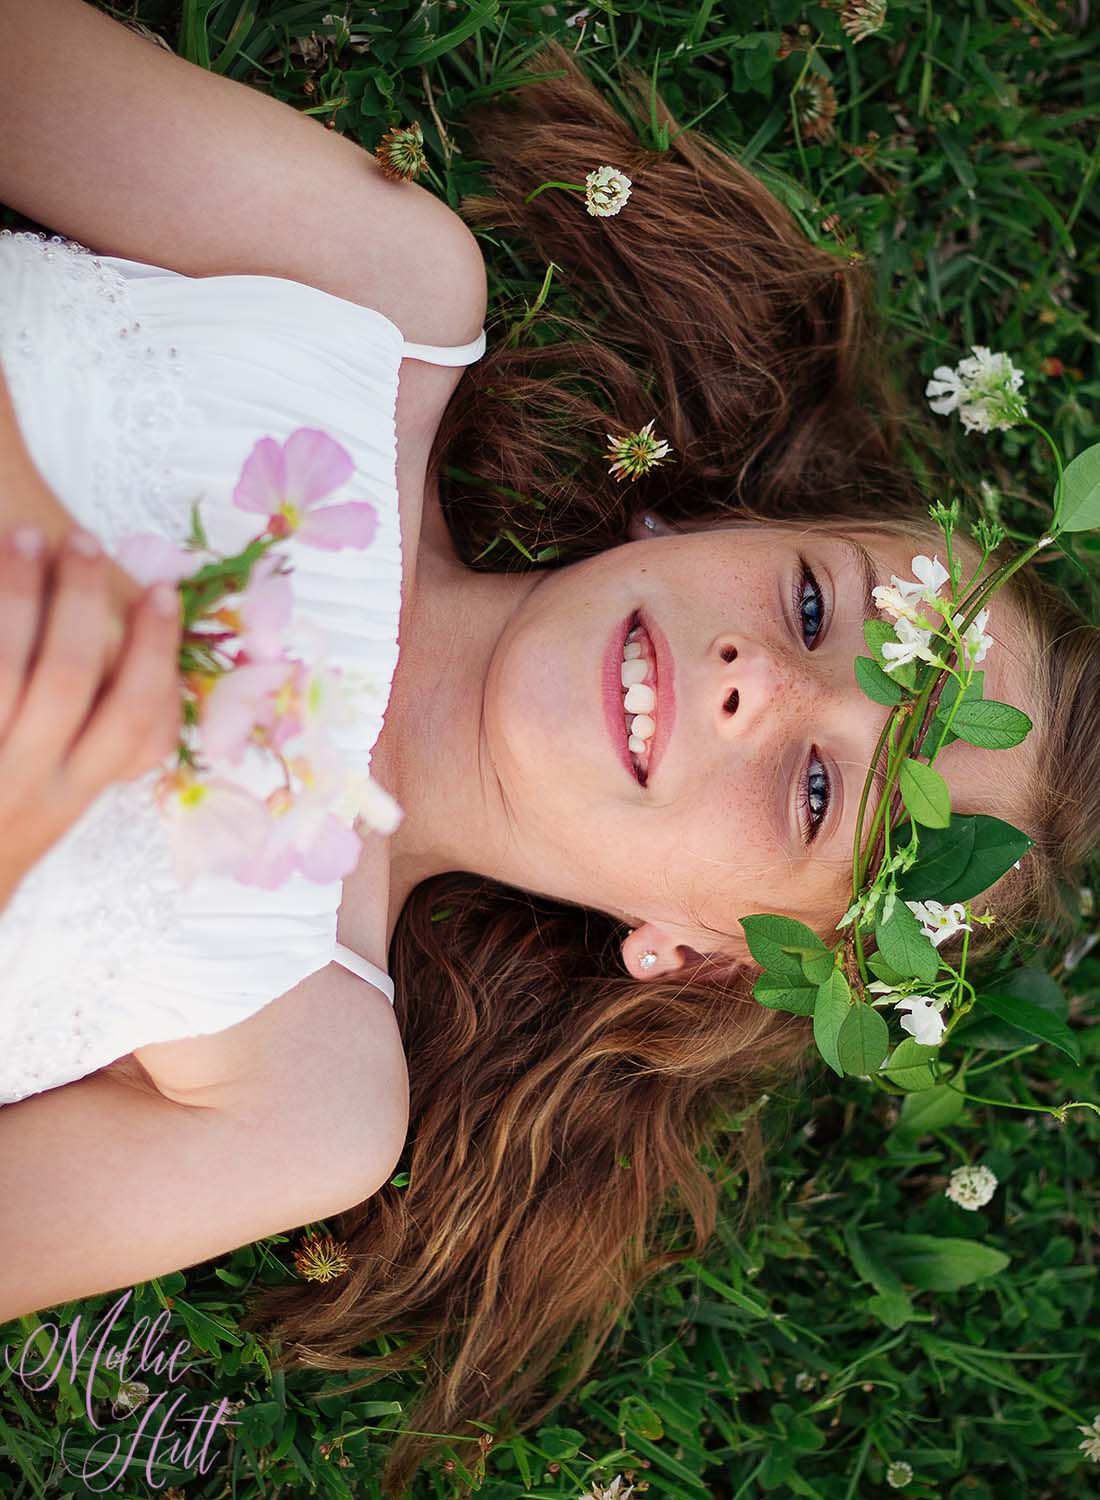 Girl laying on the ground with floral crown and white dress